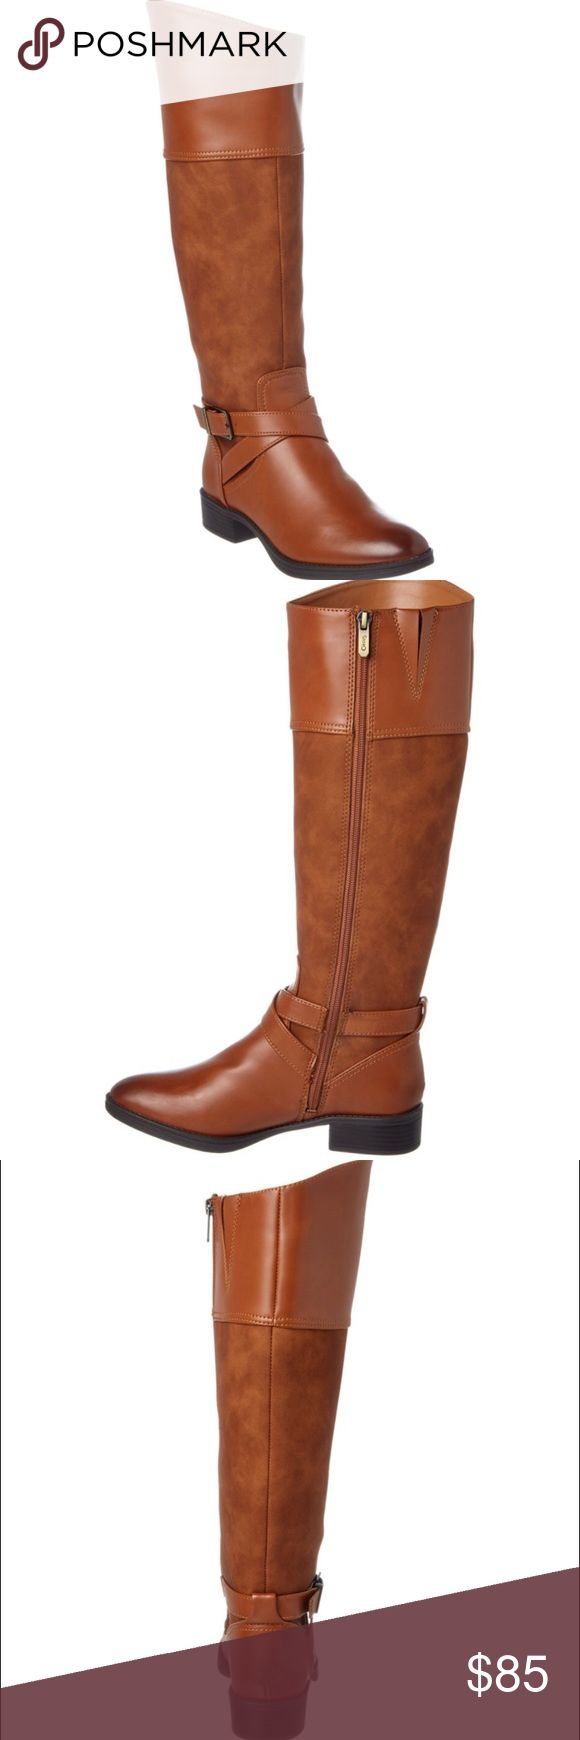 Sam Eldeman Camel Riding Boots BRAND NEW WITH BOX. Circus By Sam Edelman 1.25in Heel Color/Material: Whiskey Faux Leather Inner Side Zip-Up Closure Rubber Sole With Traction 16in Shaft 15.5in Boot Circumference Please Note: All Measurements Are Approximate And Were Taken From A Size 7; Slight Variations May Occur. Imported See Details Design Details: Gold-Tone Hardware, Inner Elasticized Gore Lightly Padded Insole Circus by Sam Edelman Shoes Heeled Boots